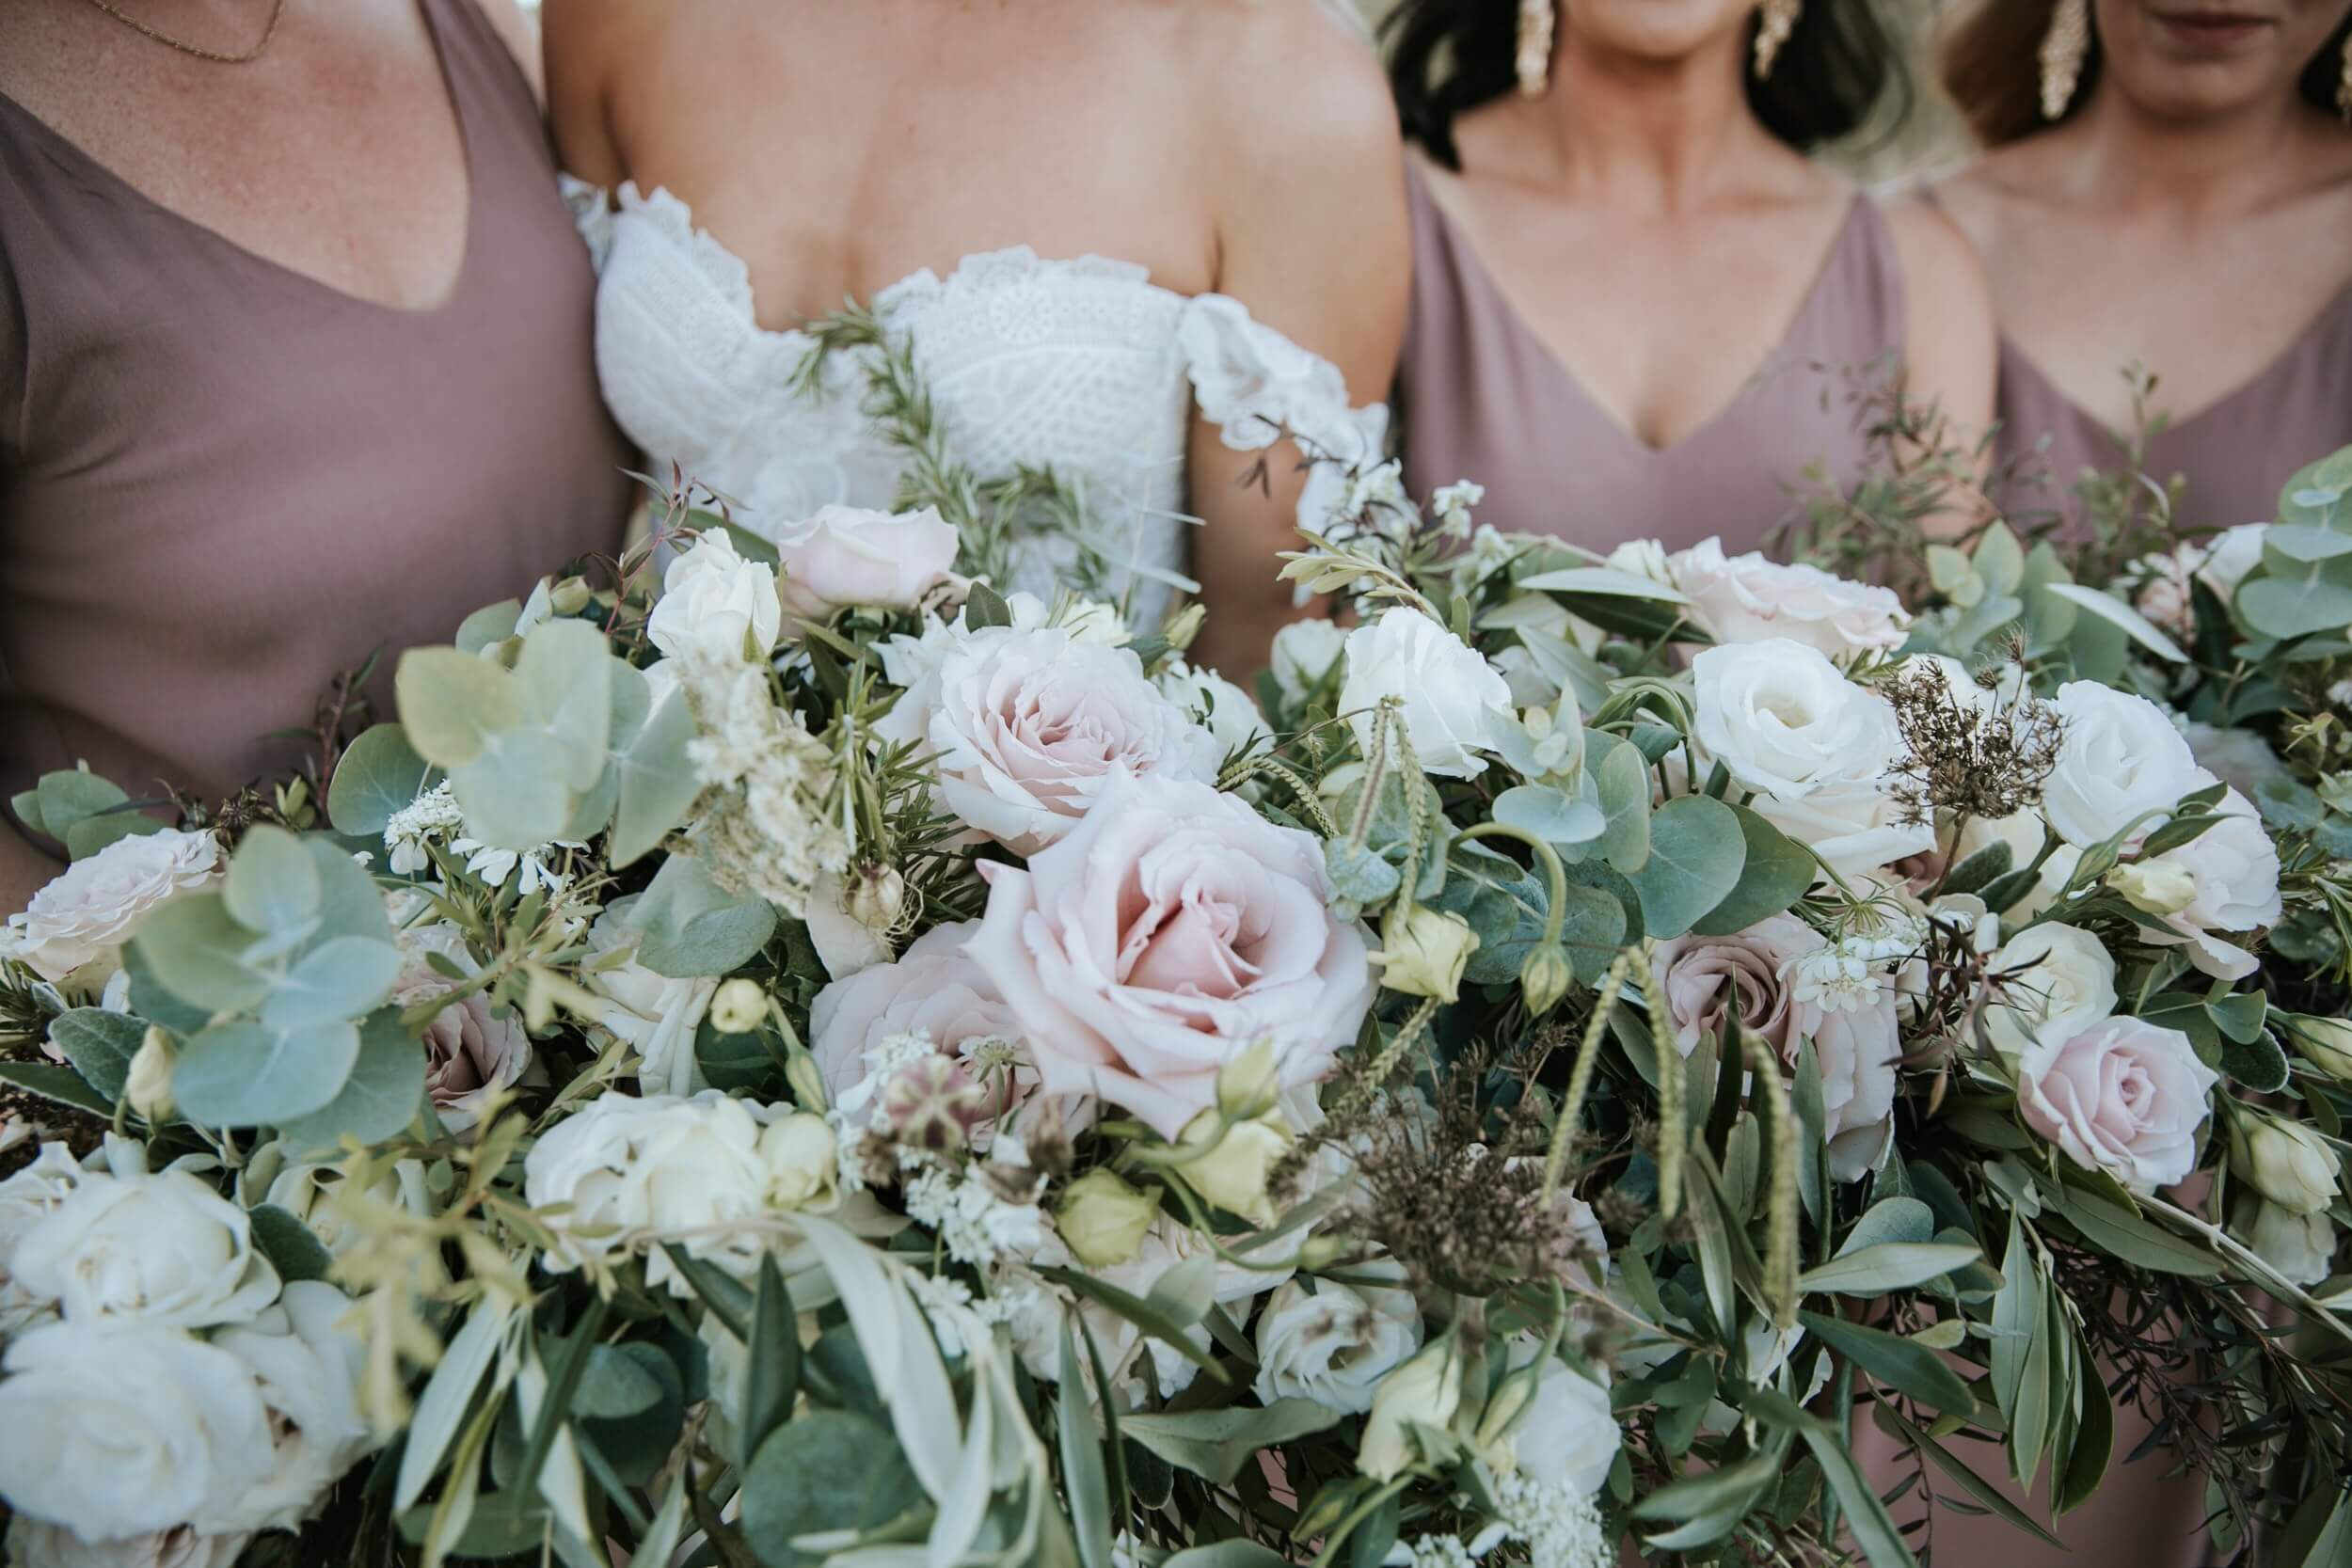 Katrin Lilla - Got It Covered wedding and event floristOver 20 years of floristry experience and specialised in weddings and events